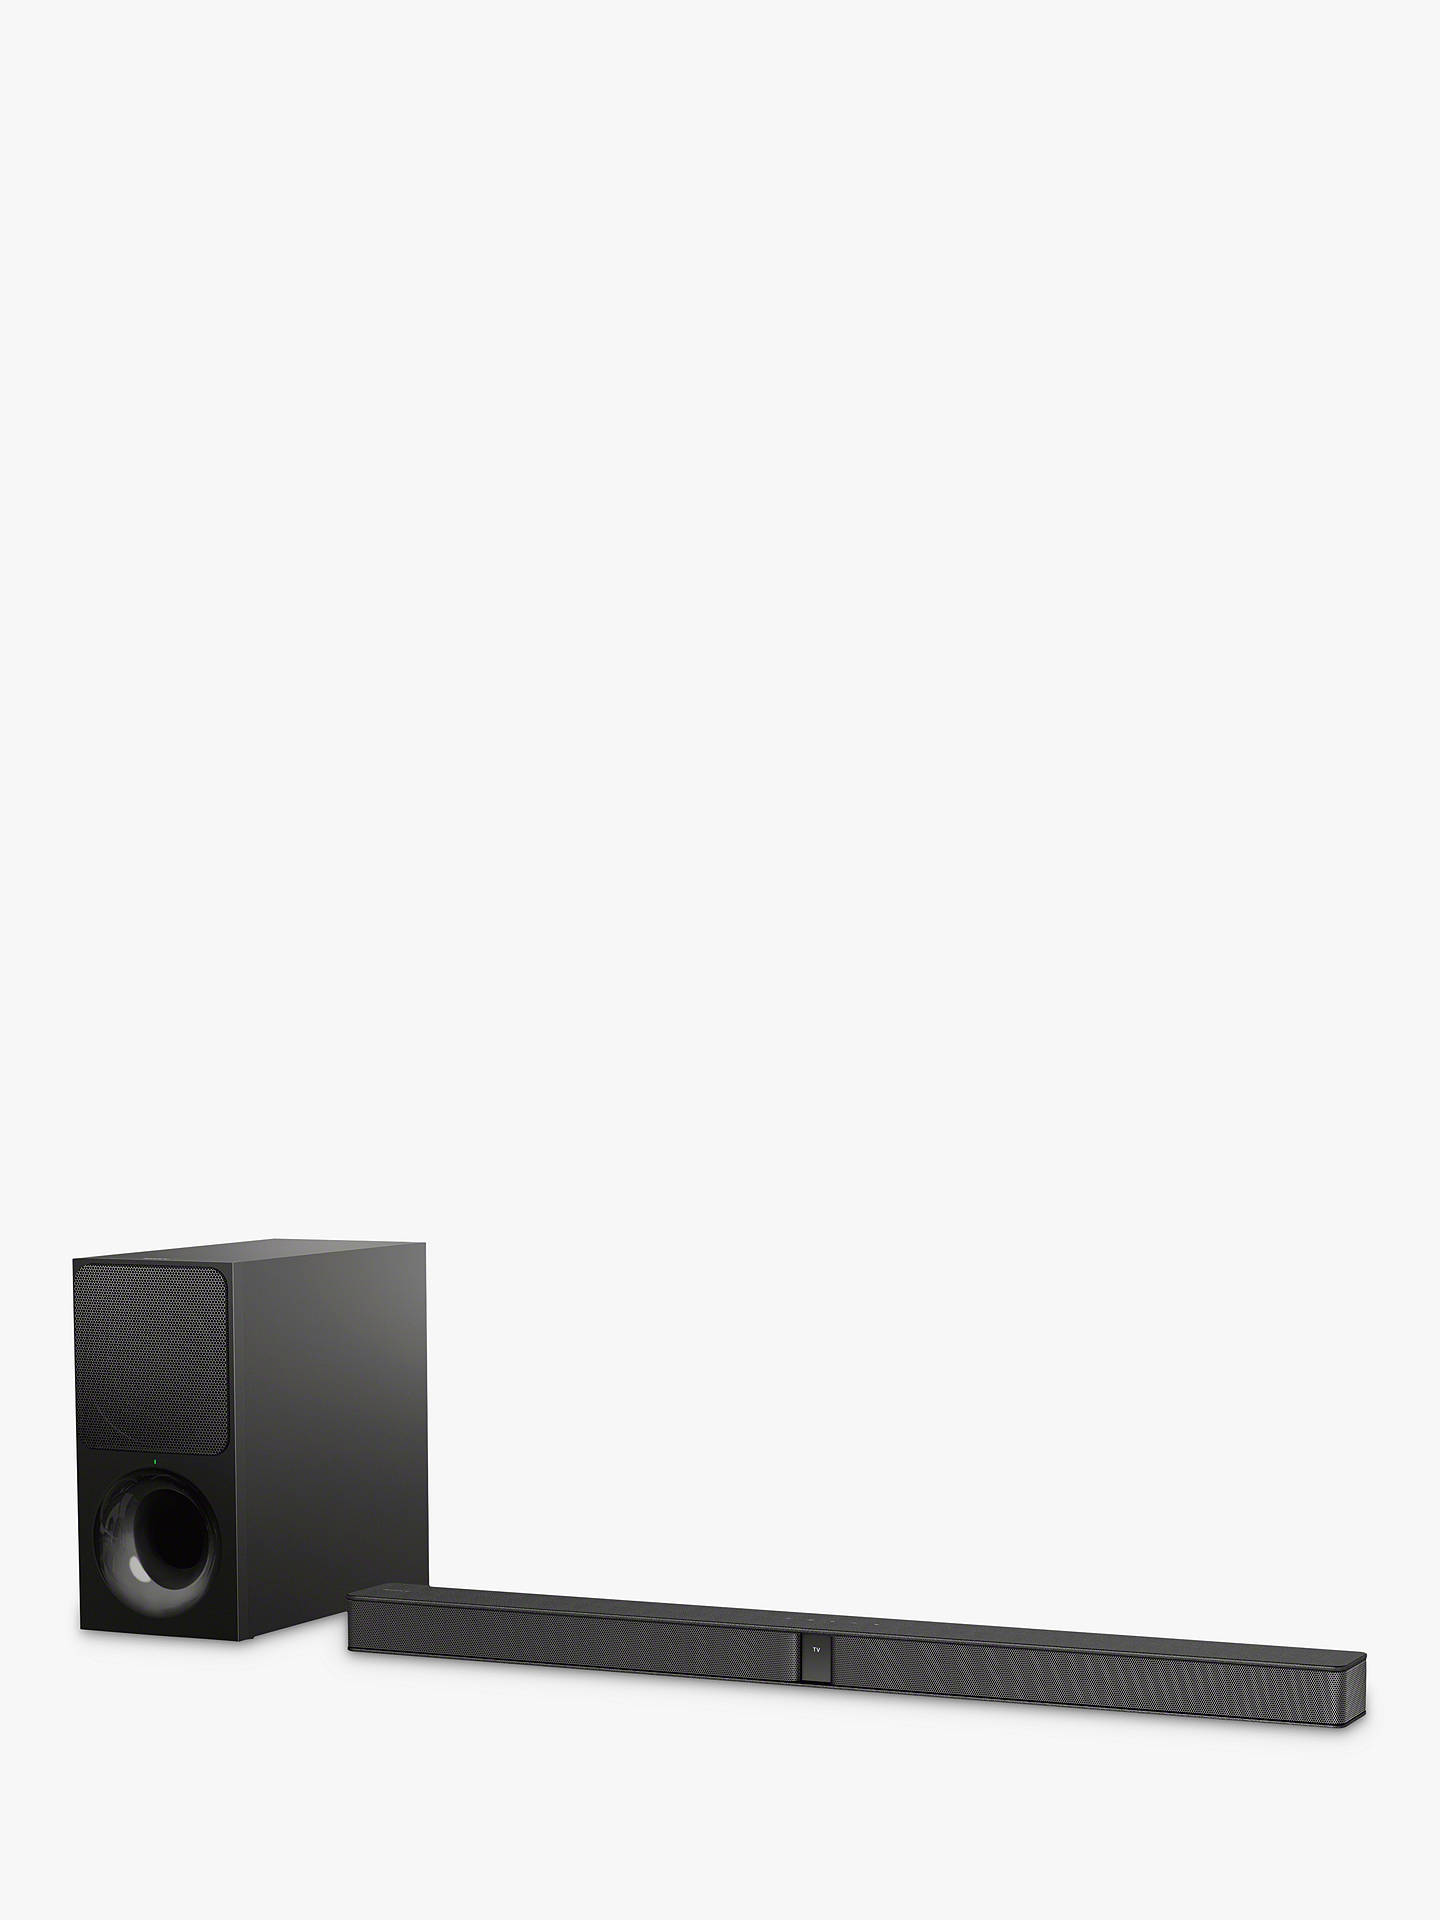 Sony HT-CT290 Bluetooth Sound Bar with Wireless Subwoofer, Black